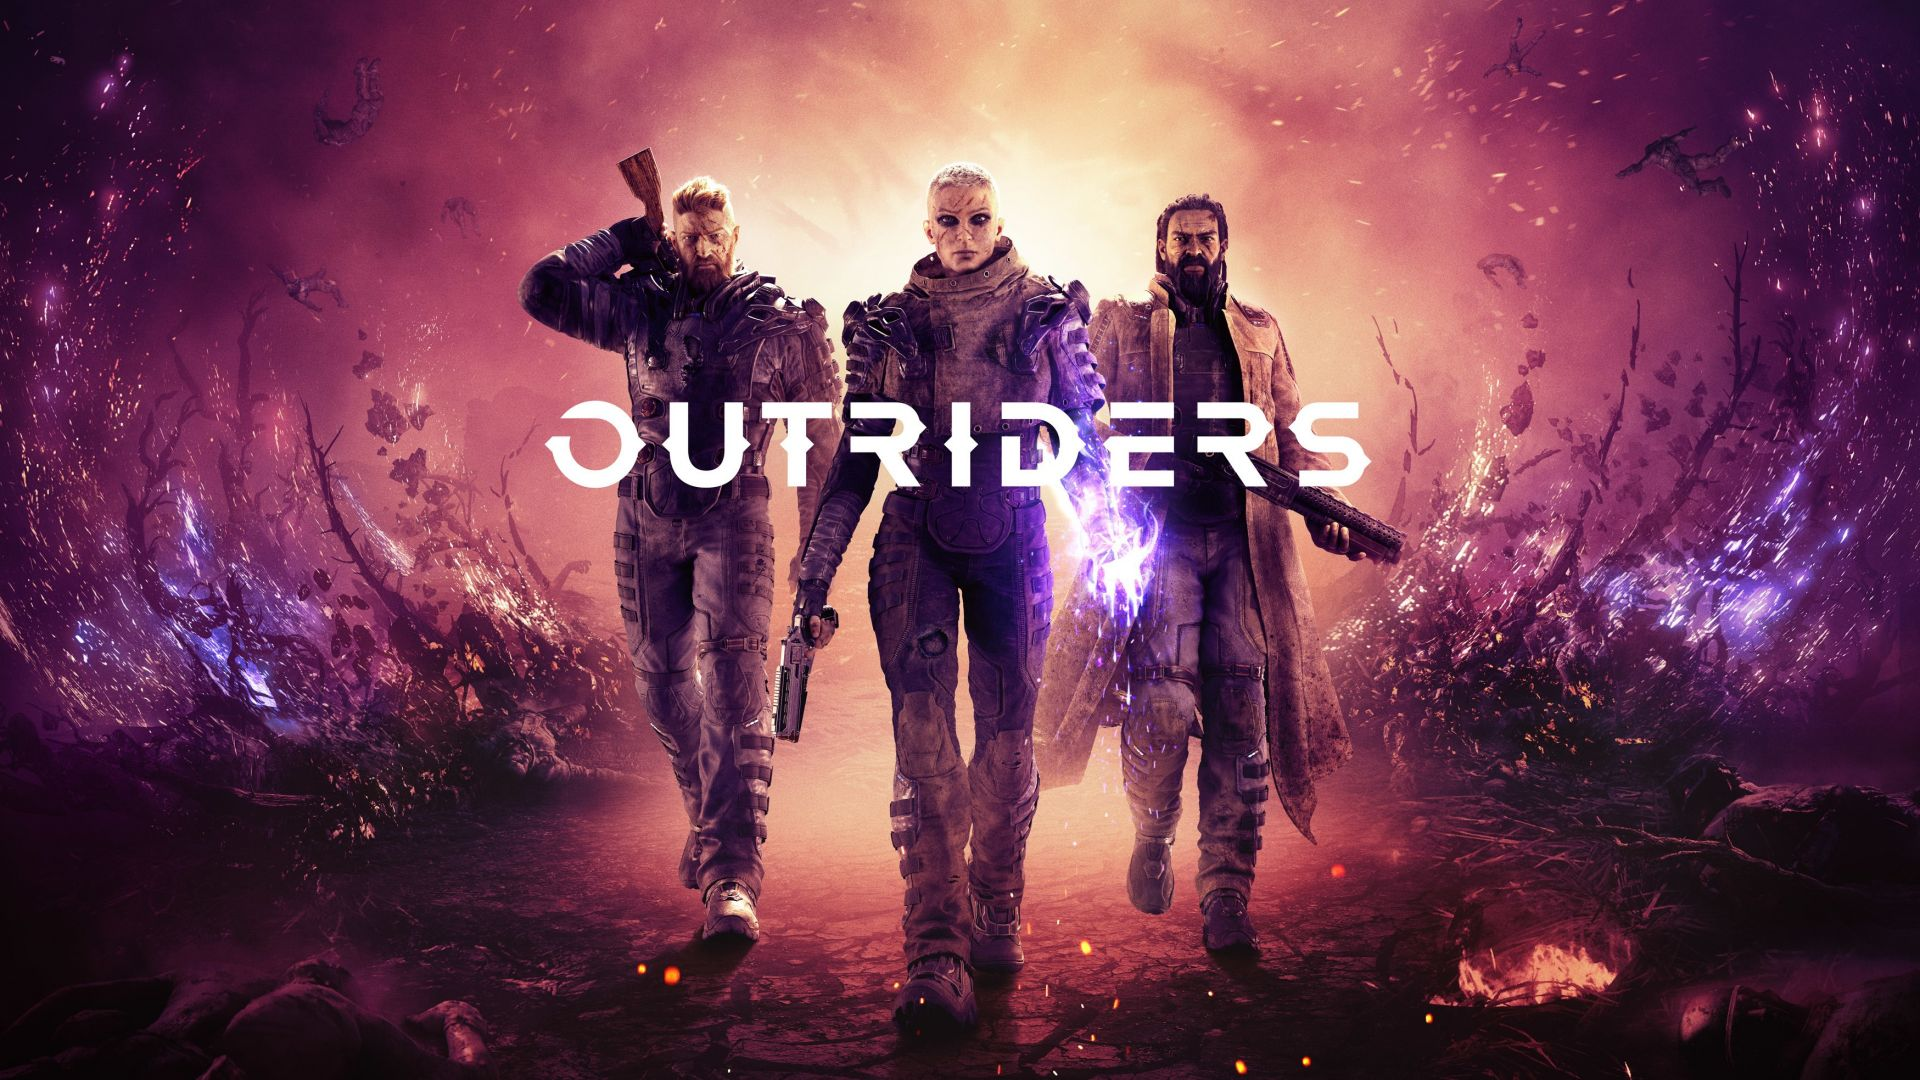 Outriders, E3 2019, poster, 4K (horizontal)